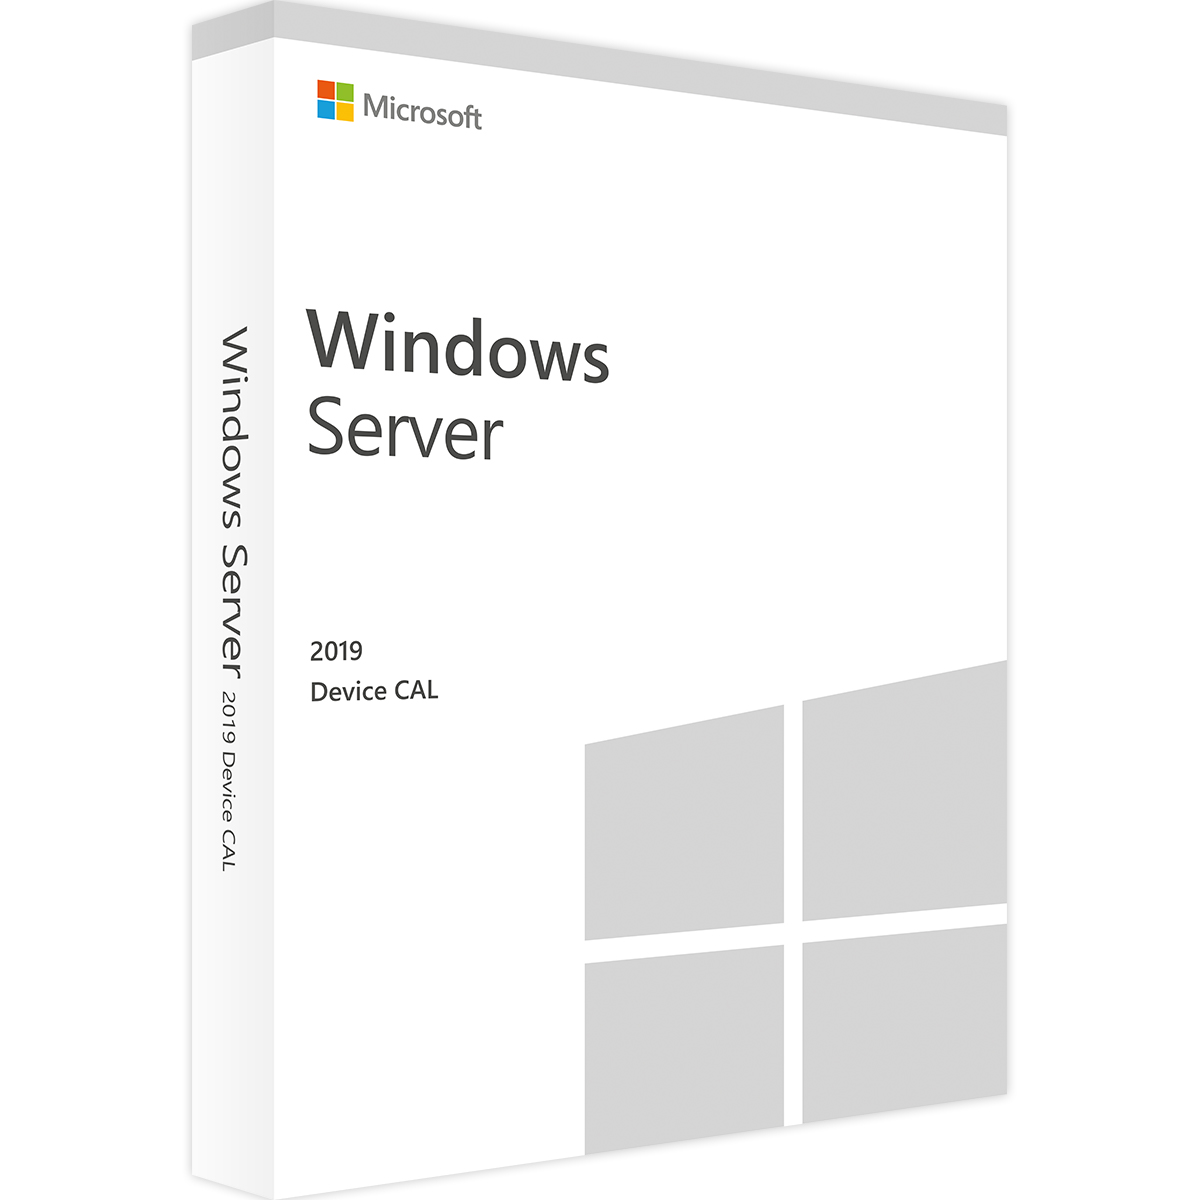 Windows Server 2019 DEVICE CAL 5-pack dla DELL